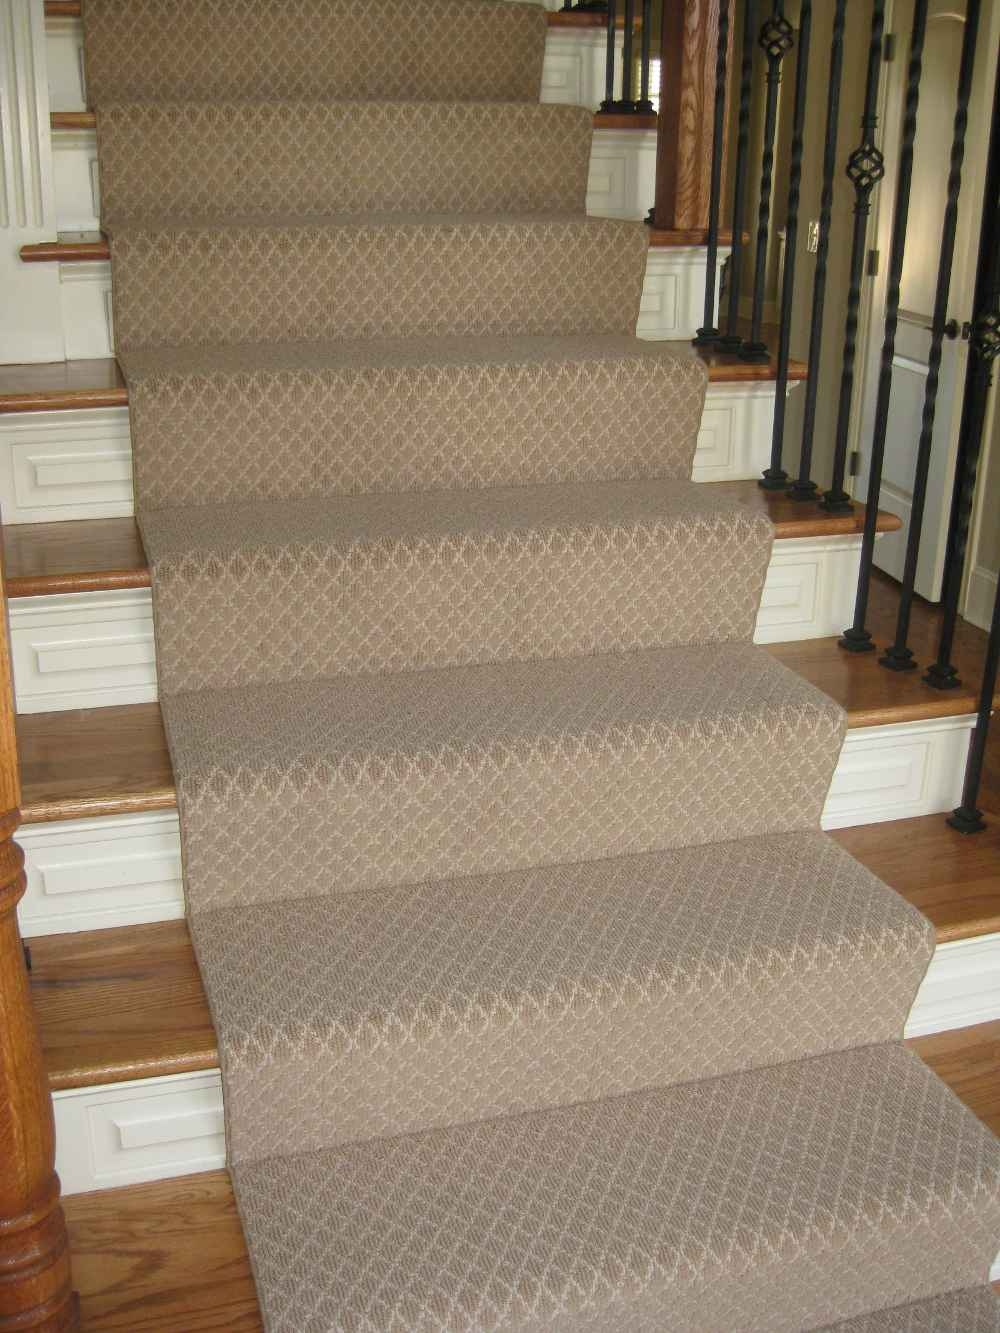 Keep Plastic Carpet Runners For Stairs Interior Home Design For Rug Runners For Stairs (#9 of 20)